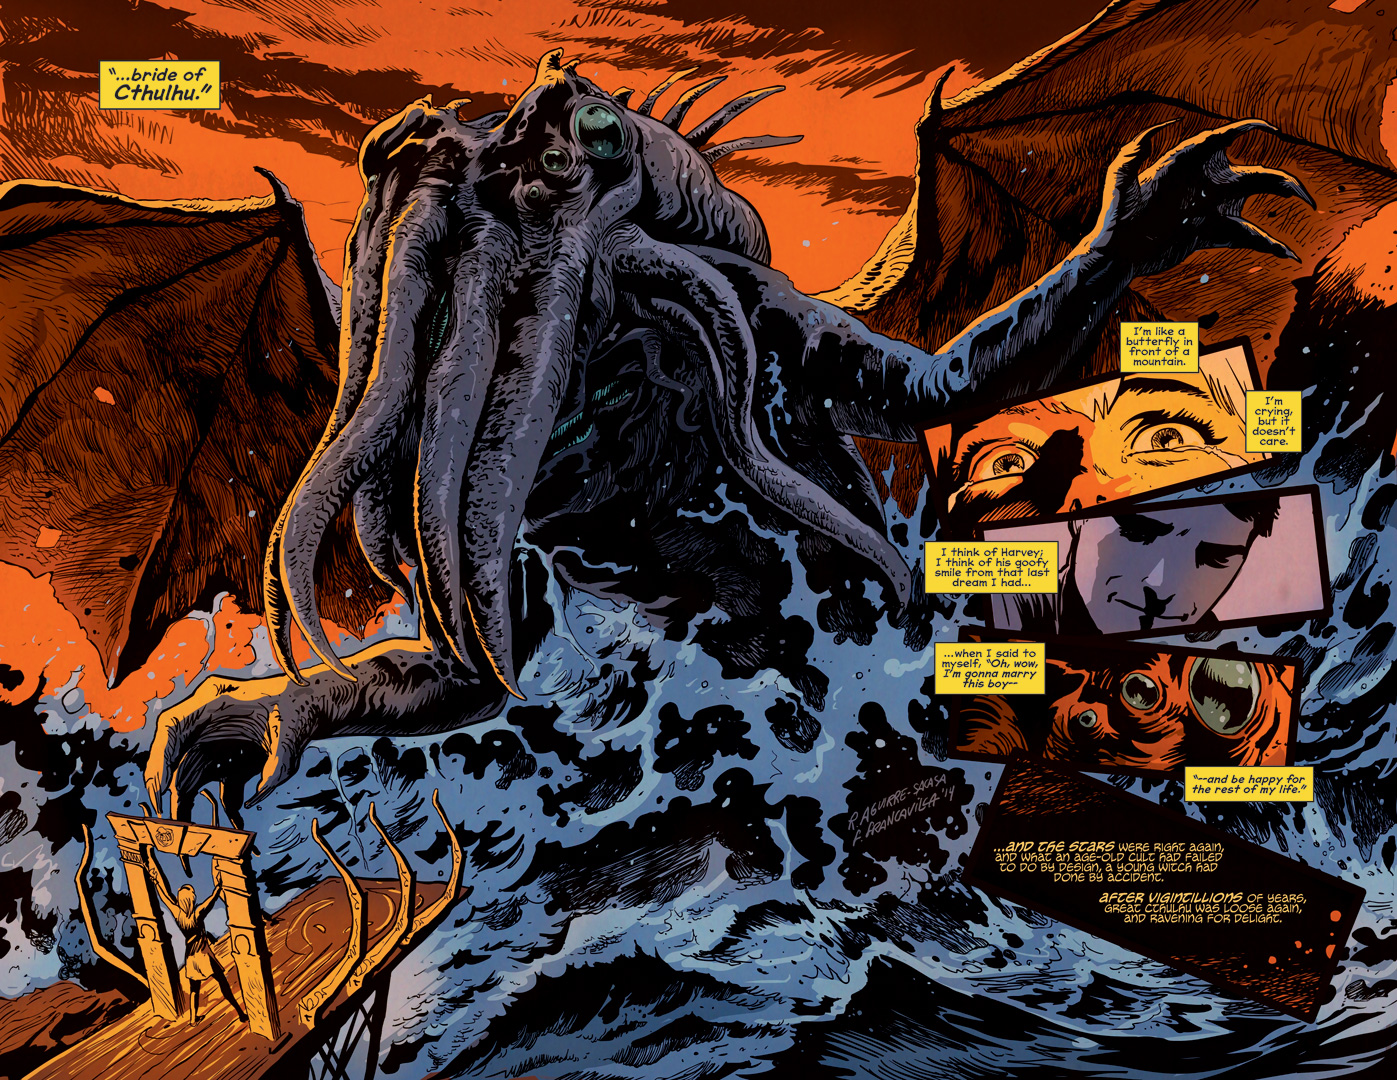 Cthulhu rises. - Afterlife with Archie #6